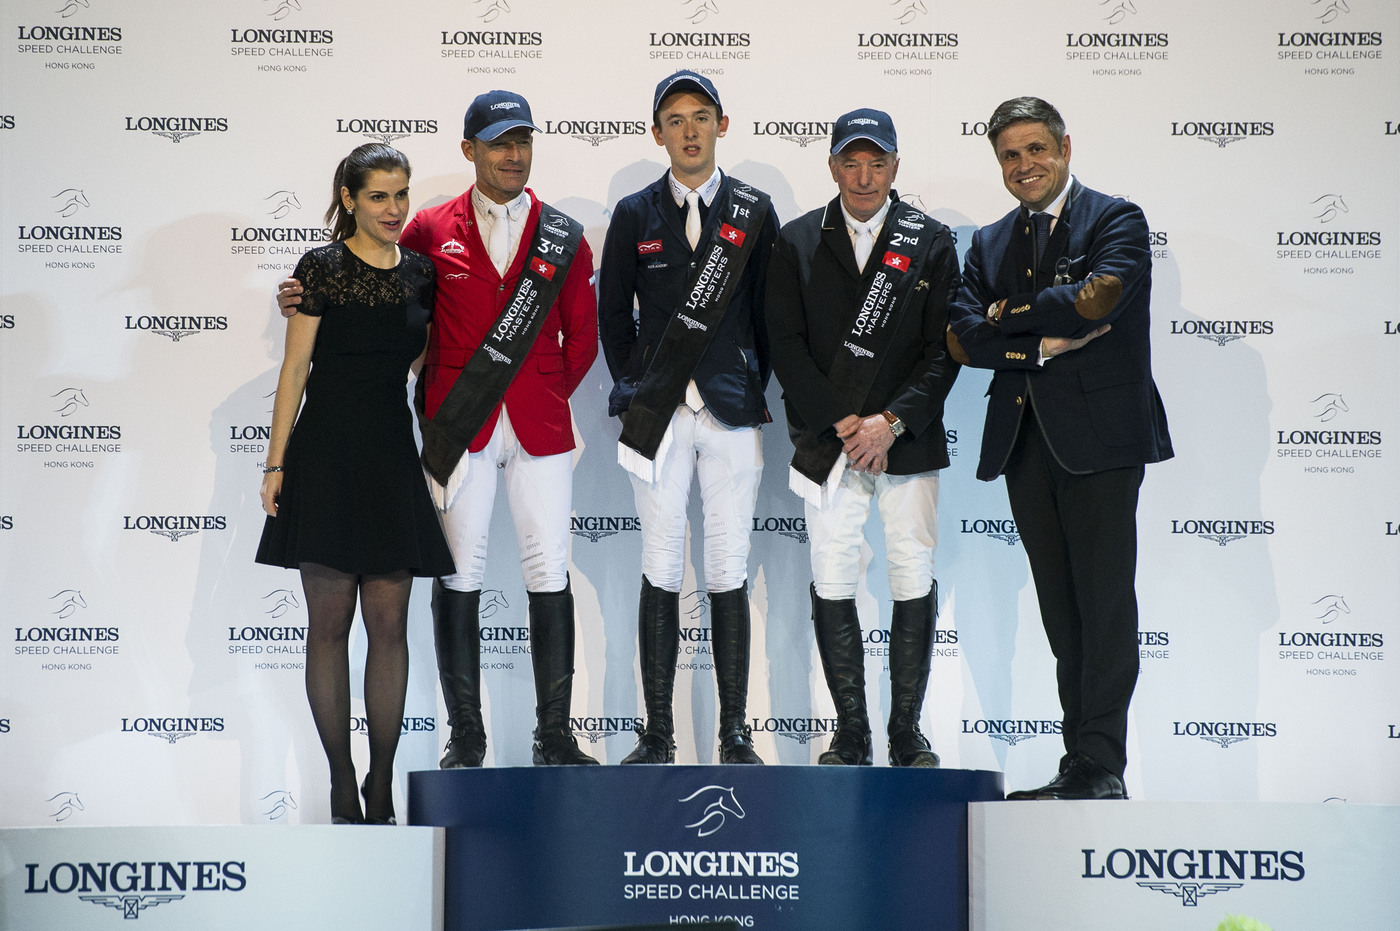 Longines Flat Racing Event: Bertram Allen won the Longines Speed Challenge in a thrilling atmosphere 5